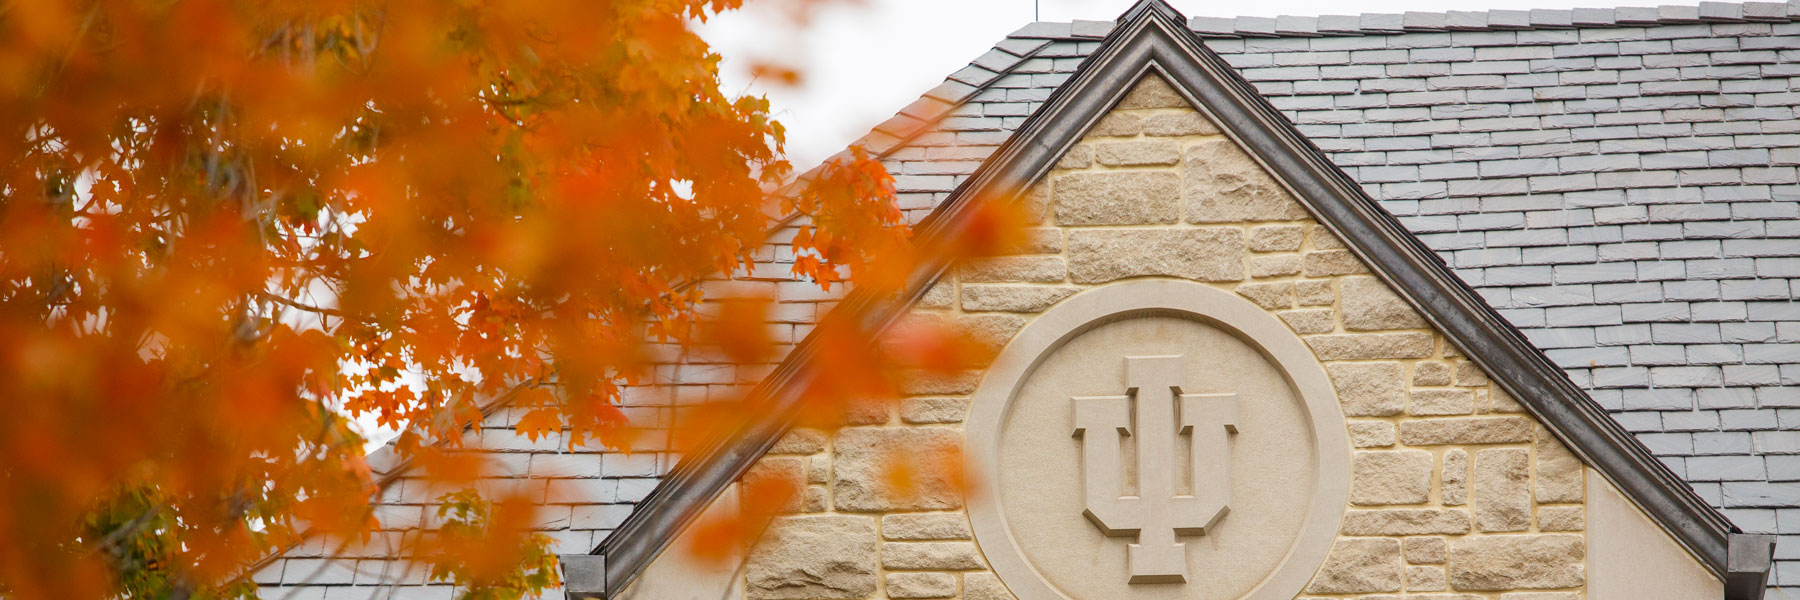 The IU trident on a campus building surrounded by Fall leaves